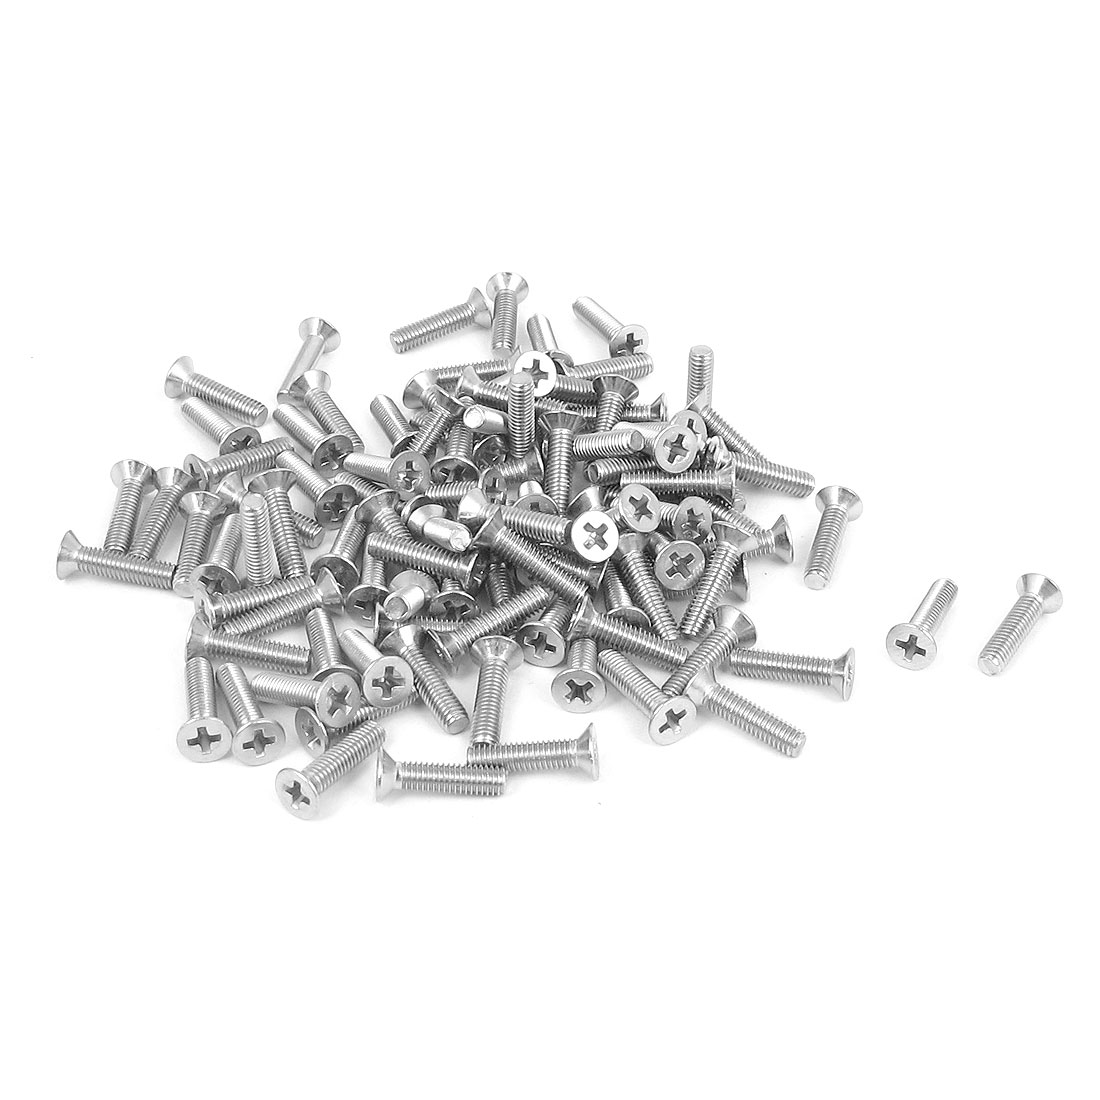 M3 x 12mm Metric Phillips Flat Head Countersunk Bolts Machine Screws 100pcs